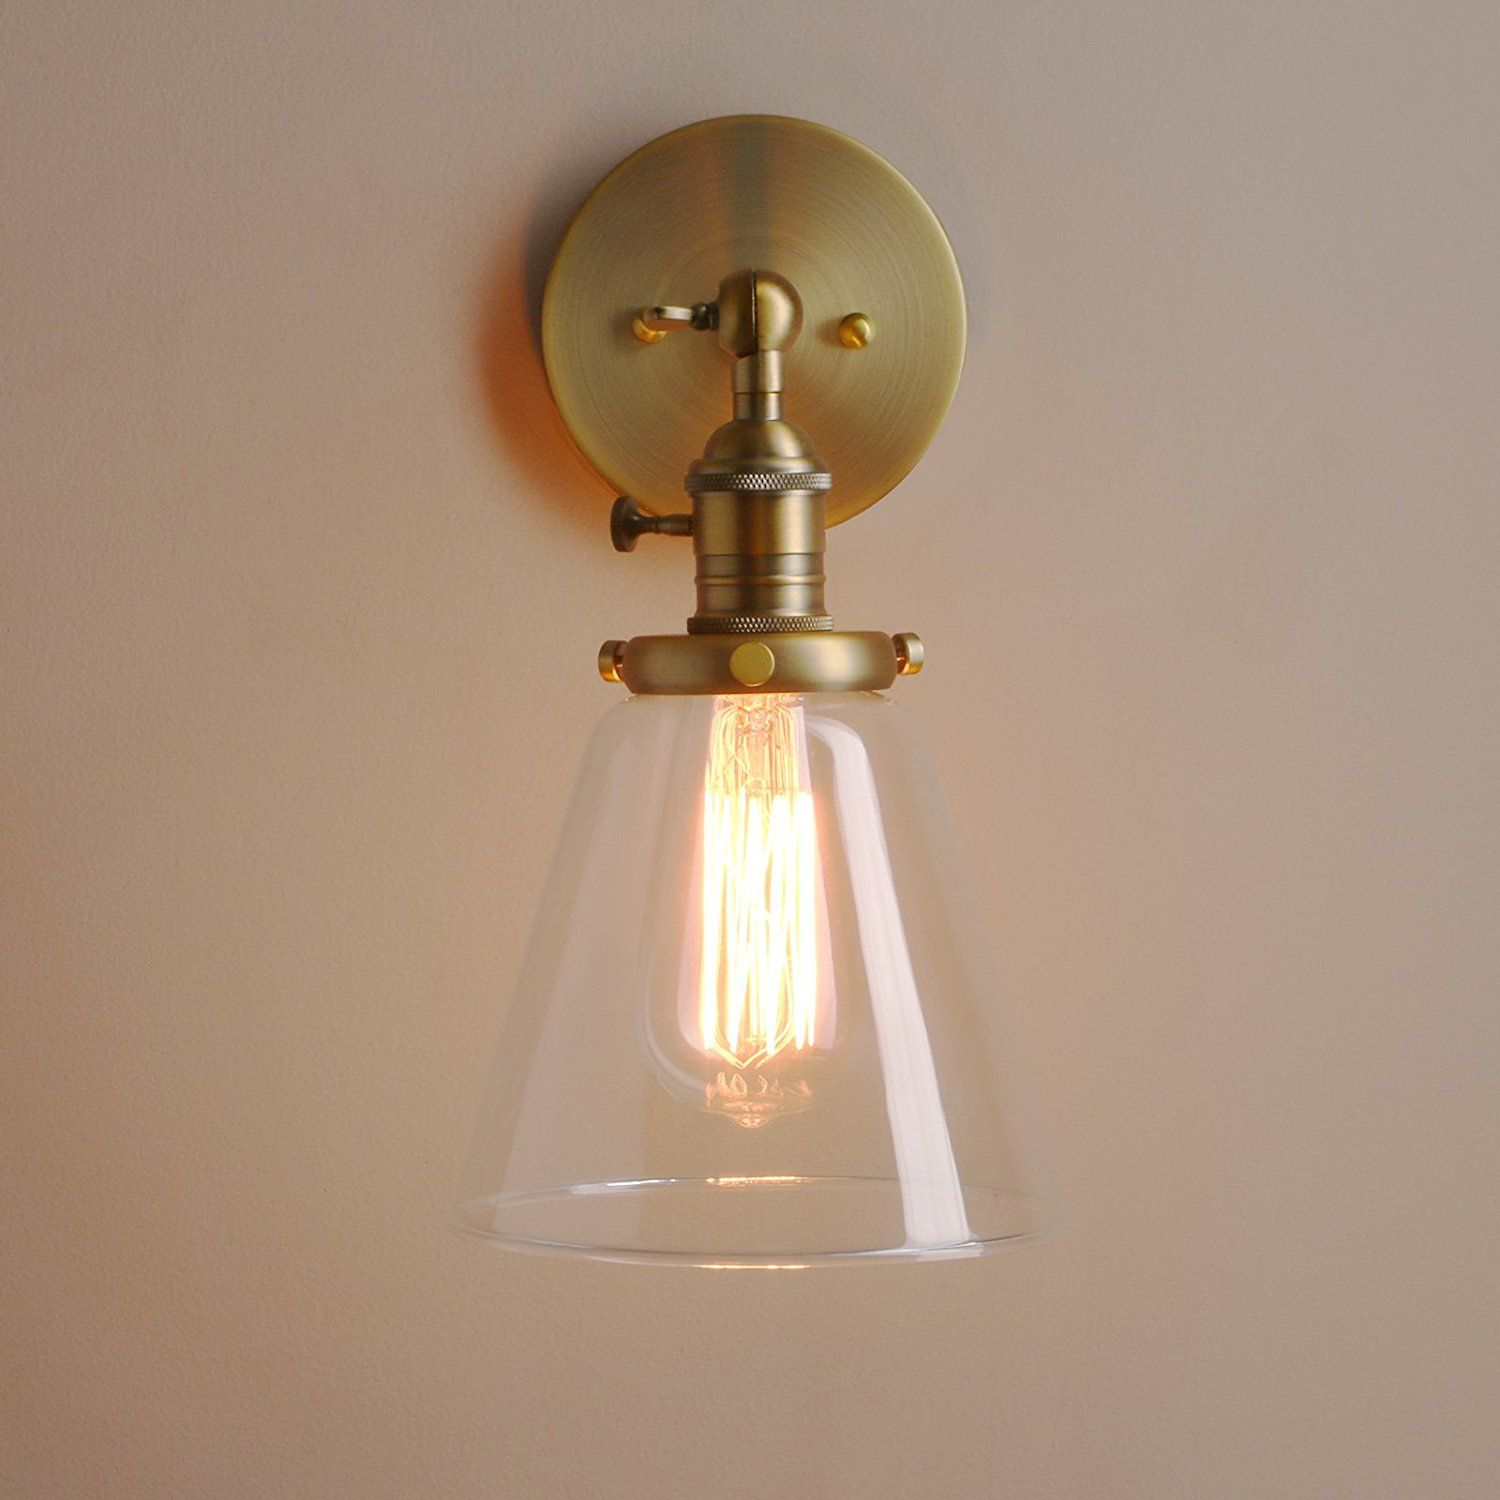 Permo Industrial Wall Sconce Lighting with On/Off Switch ...